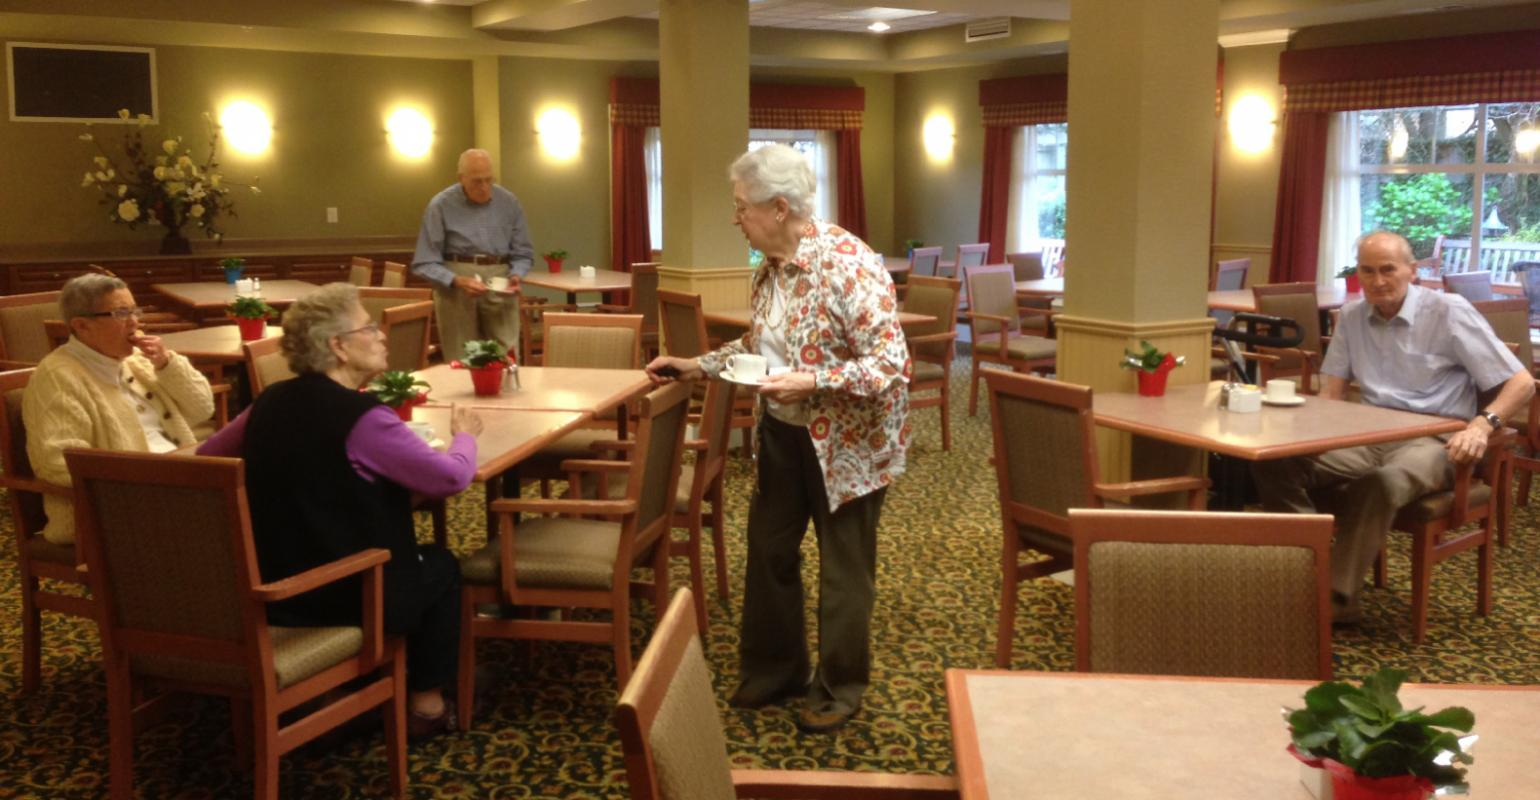 seniors-in-dining-room-at-senior-center.jpg